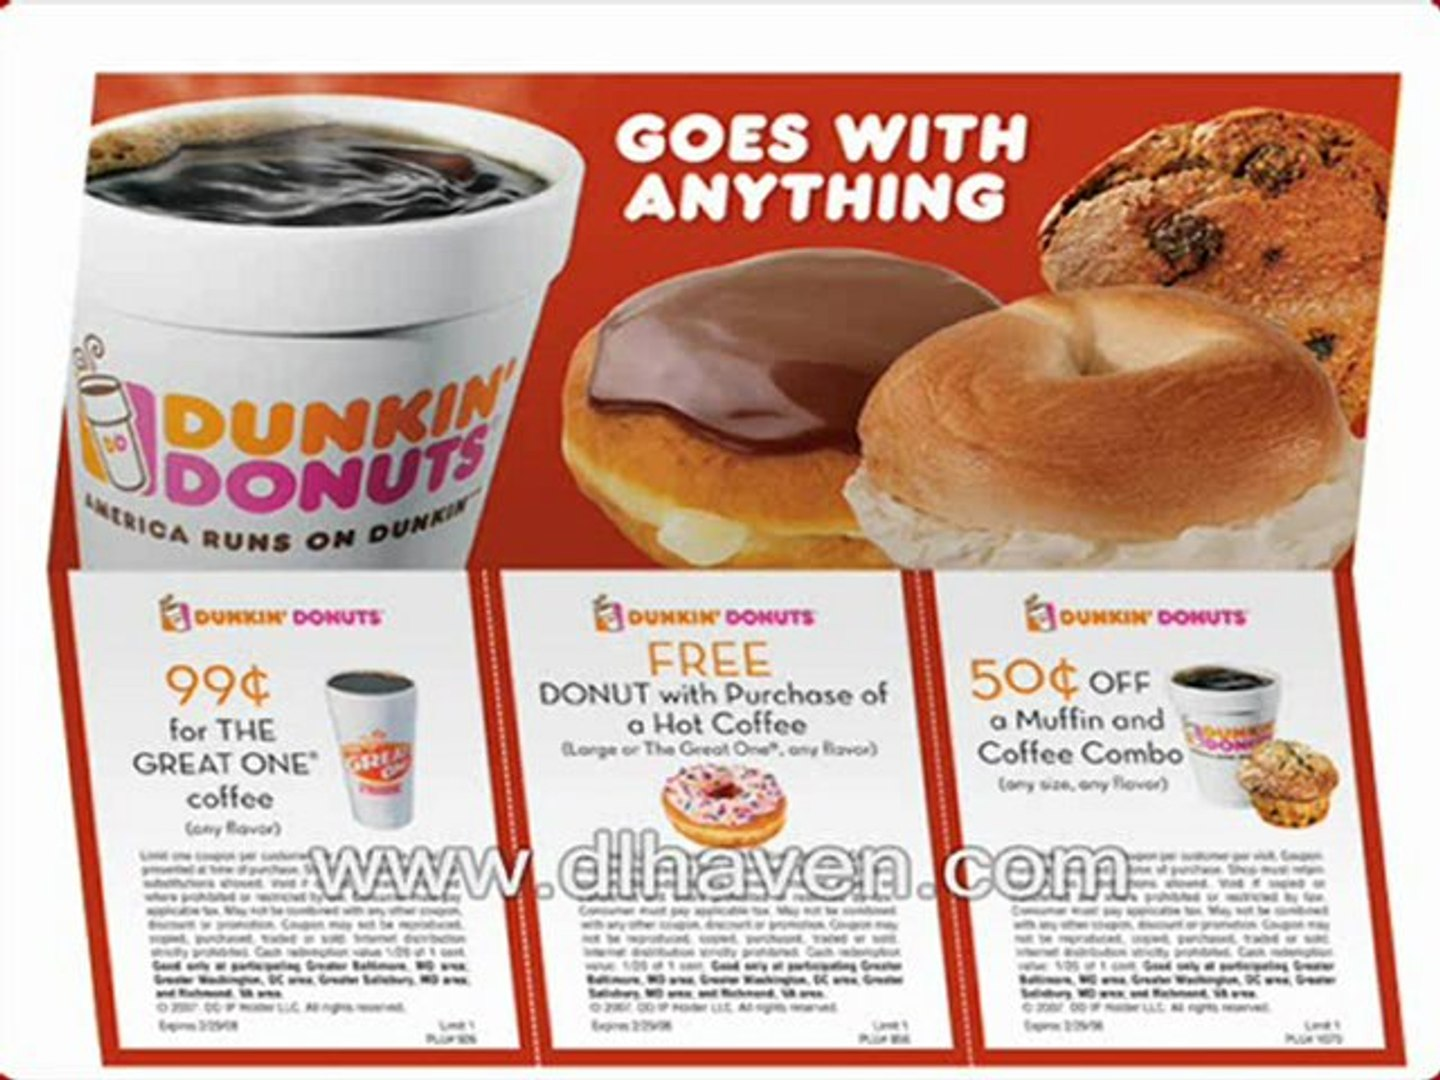 photo about Dunkin Donuts Coupons Printable titled How Toward Choose $100 No cost Dunkin Donuts Coupon